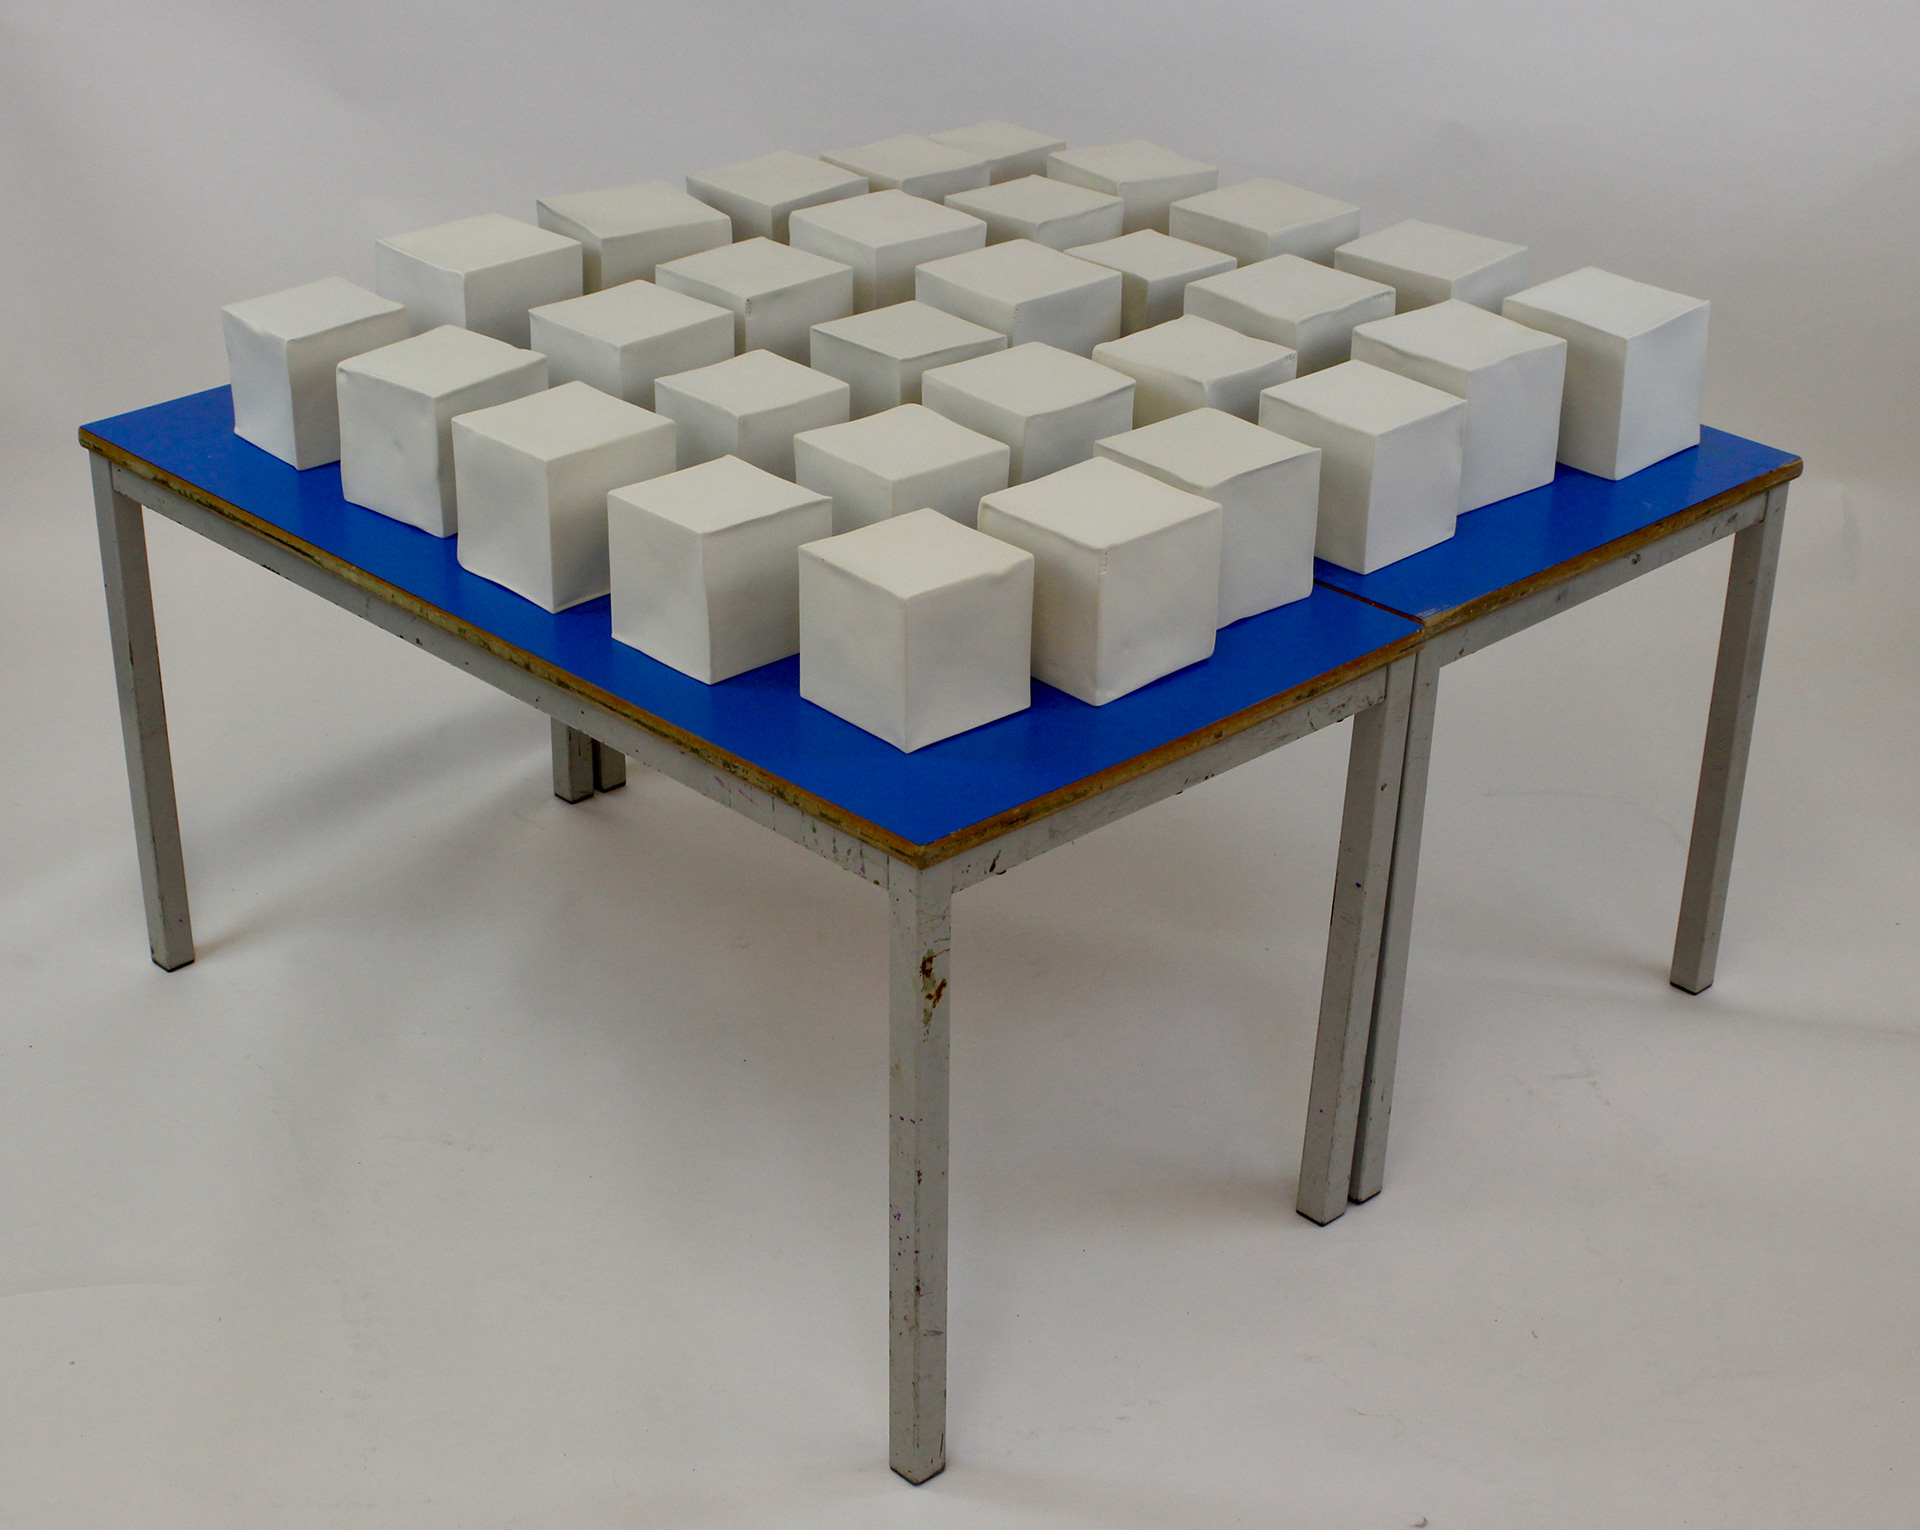 Held Breath, slip-cast porcelain, school tables, sound (H:70 cm W:120 cm D:120 cm), 2019| Gaby Solly| STIR